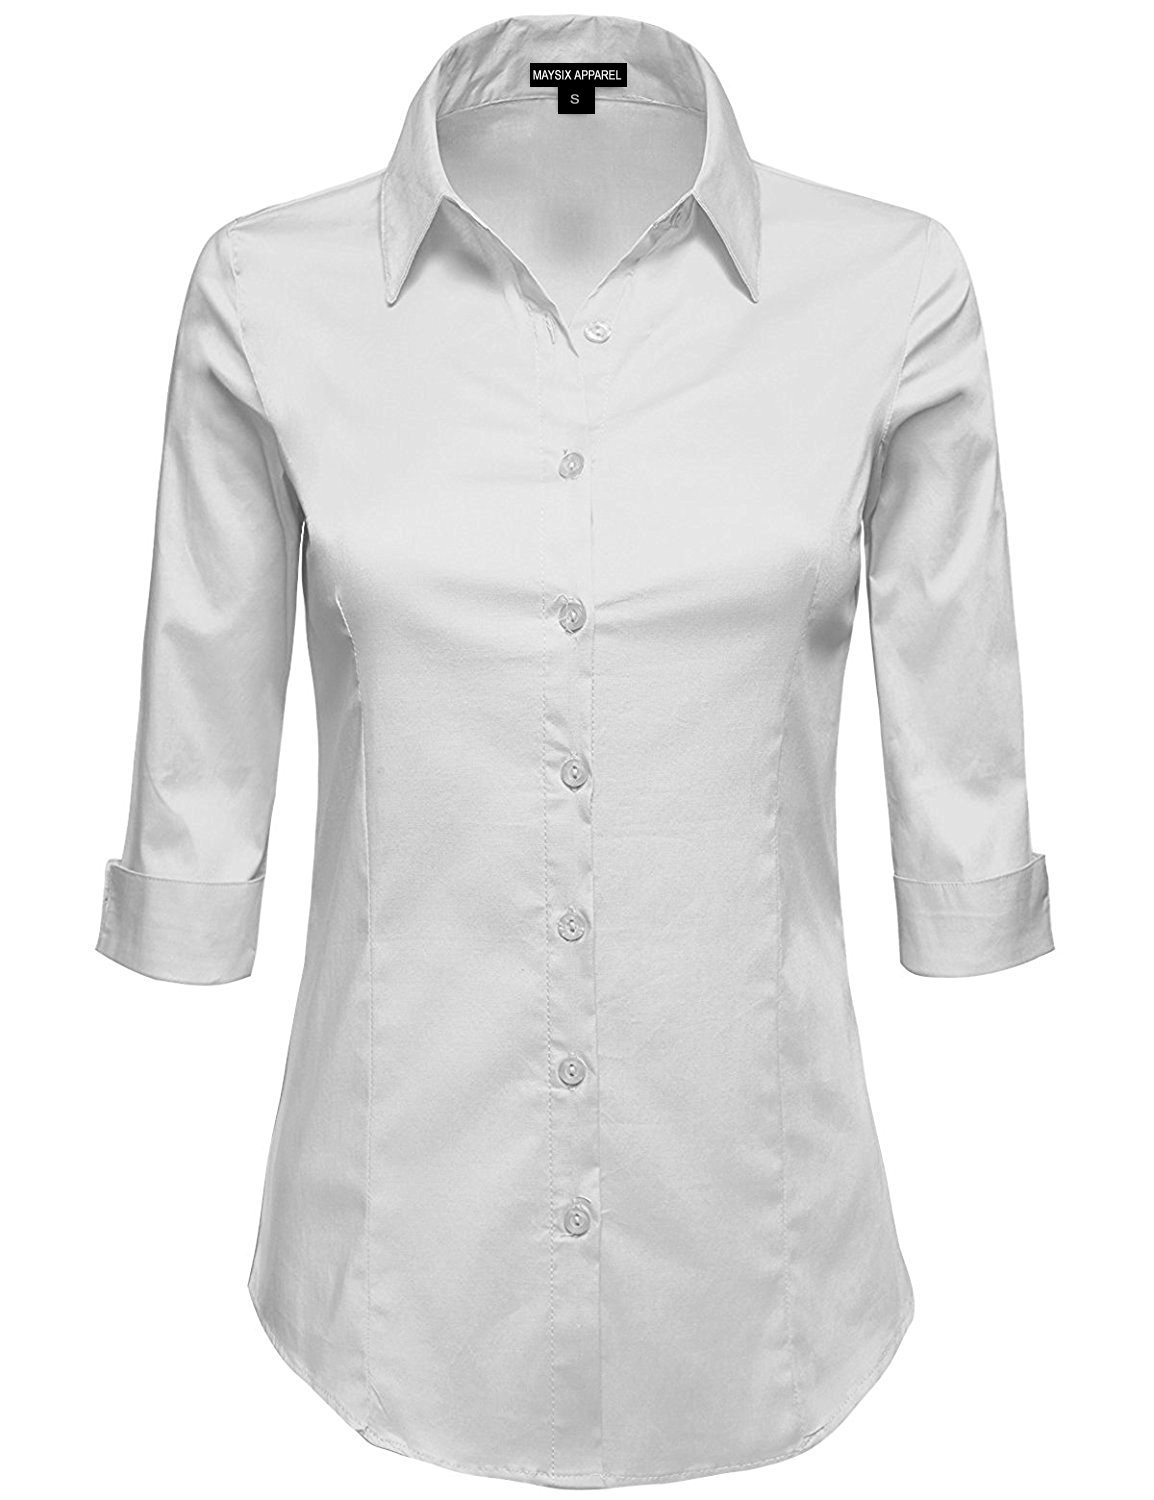 MAYSIX APPAREL Plus Size Womens 3/4 Sleeve Stretchy Button Down Collar Office Formal Shirt Blouse White 2XL